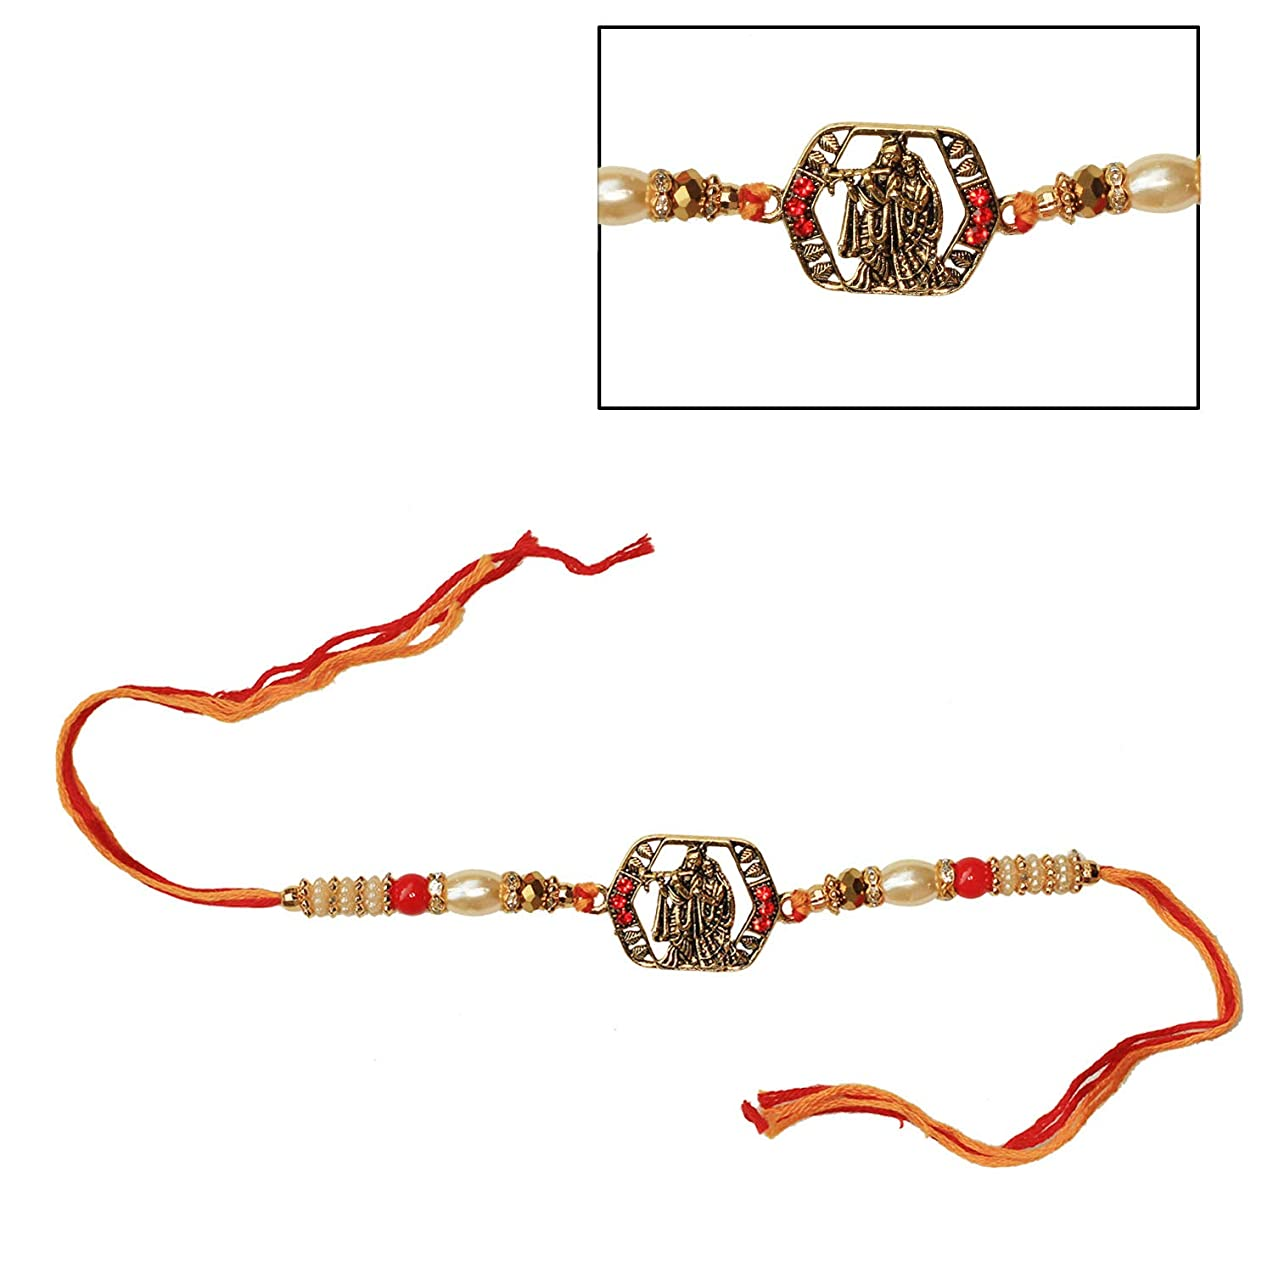 India Store US Designer Radha Krishna Rakhi with Faux Pearls, Beads & Stone - Best Handmade Multicolored Thread with Metal Notch Rakhi for Loving Brother/Sibling/Bhai from India